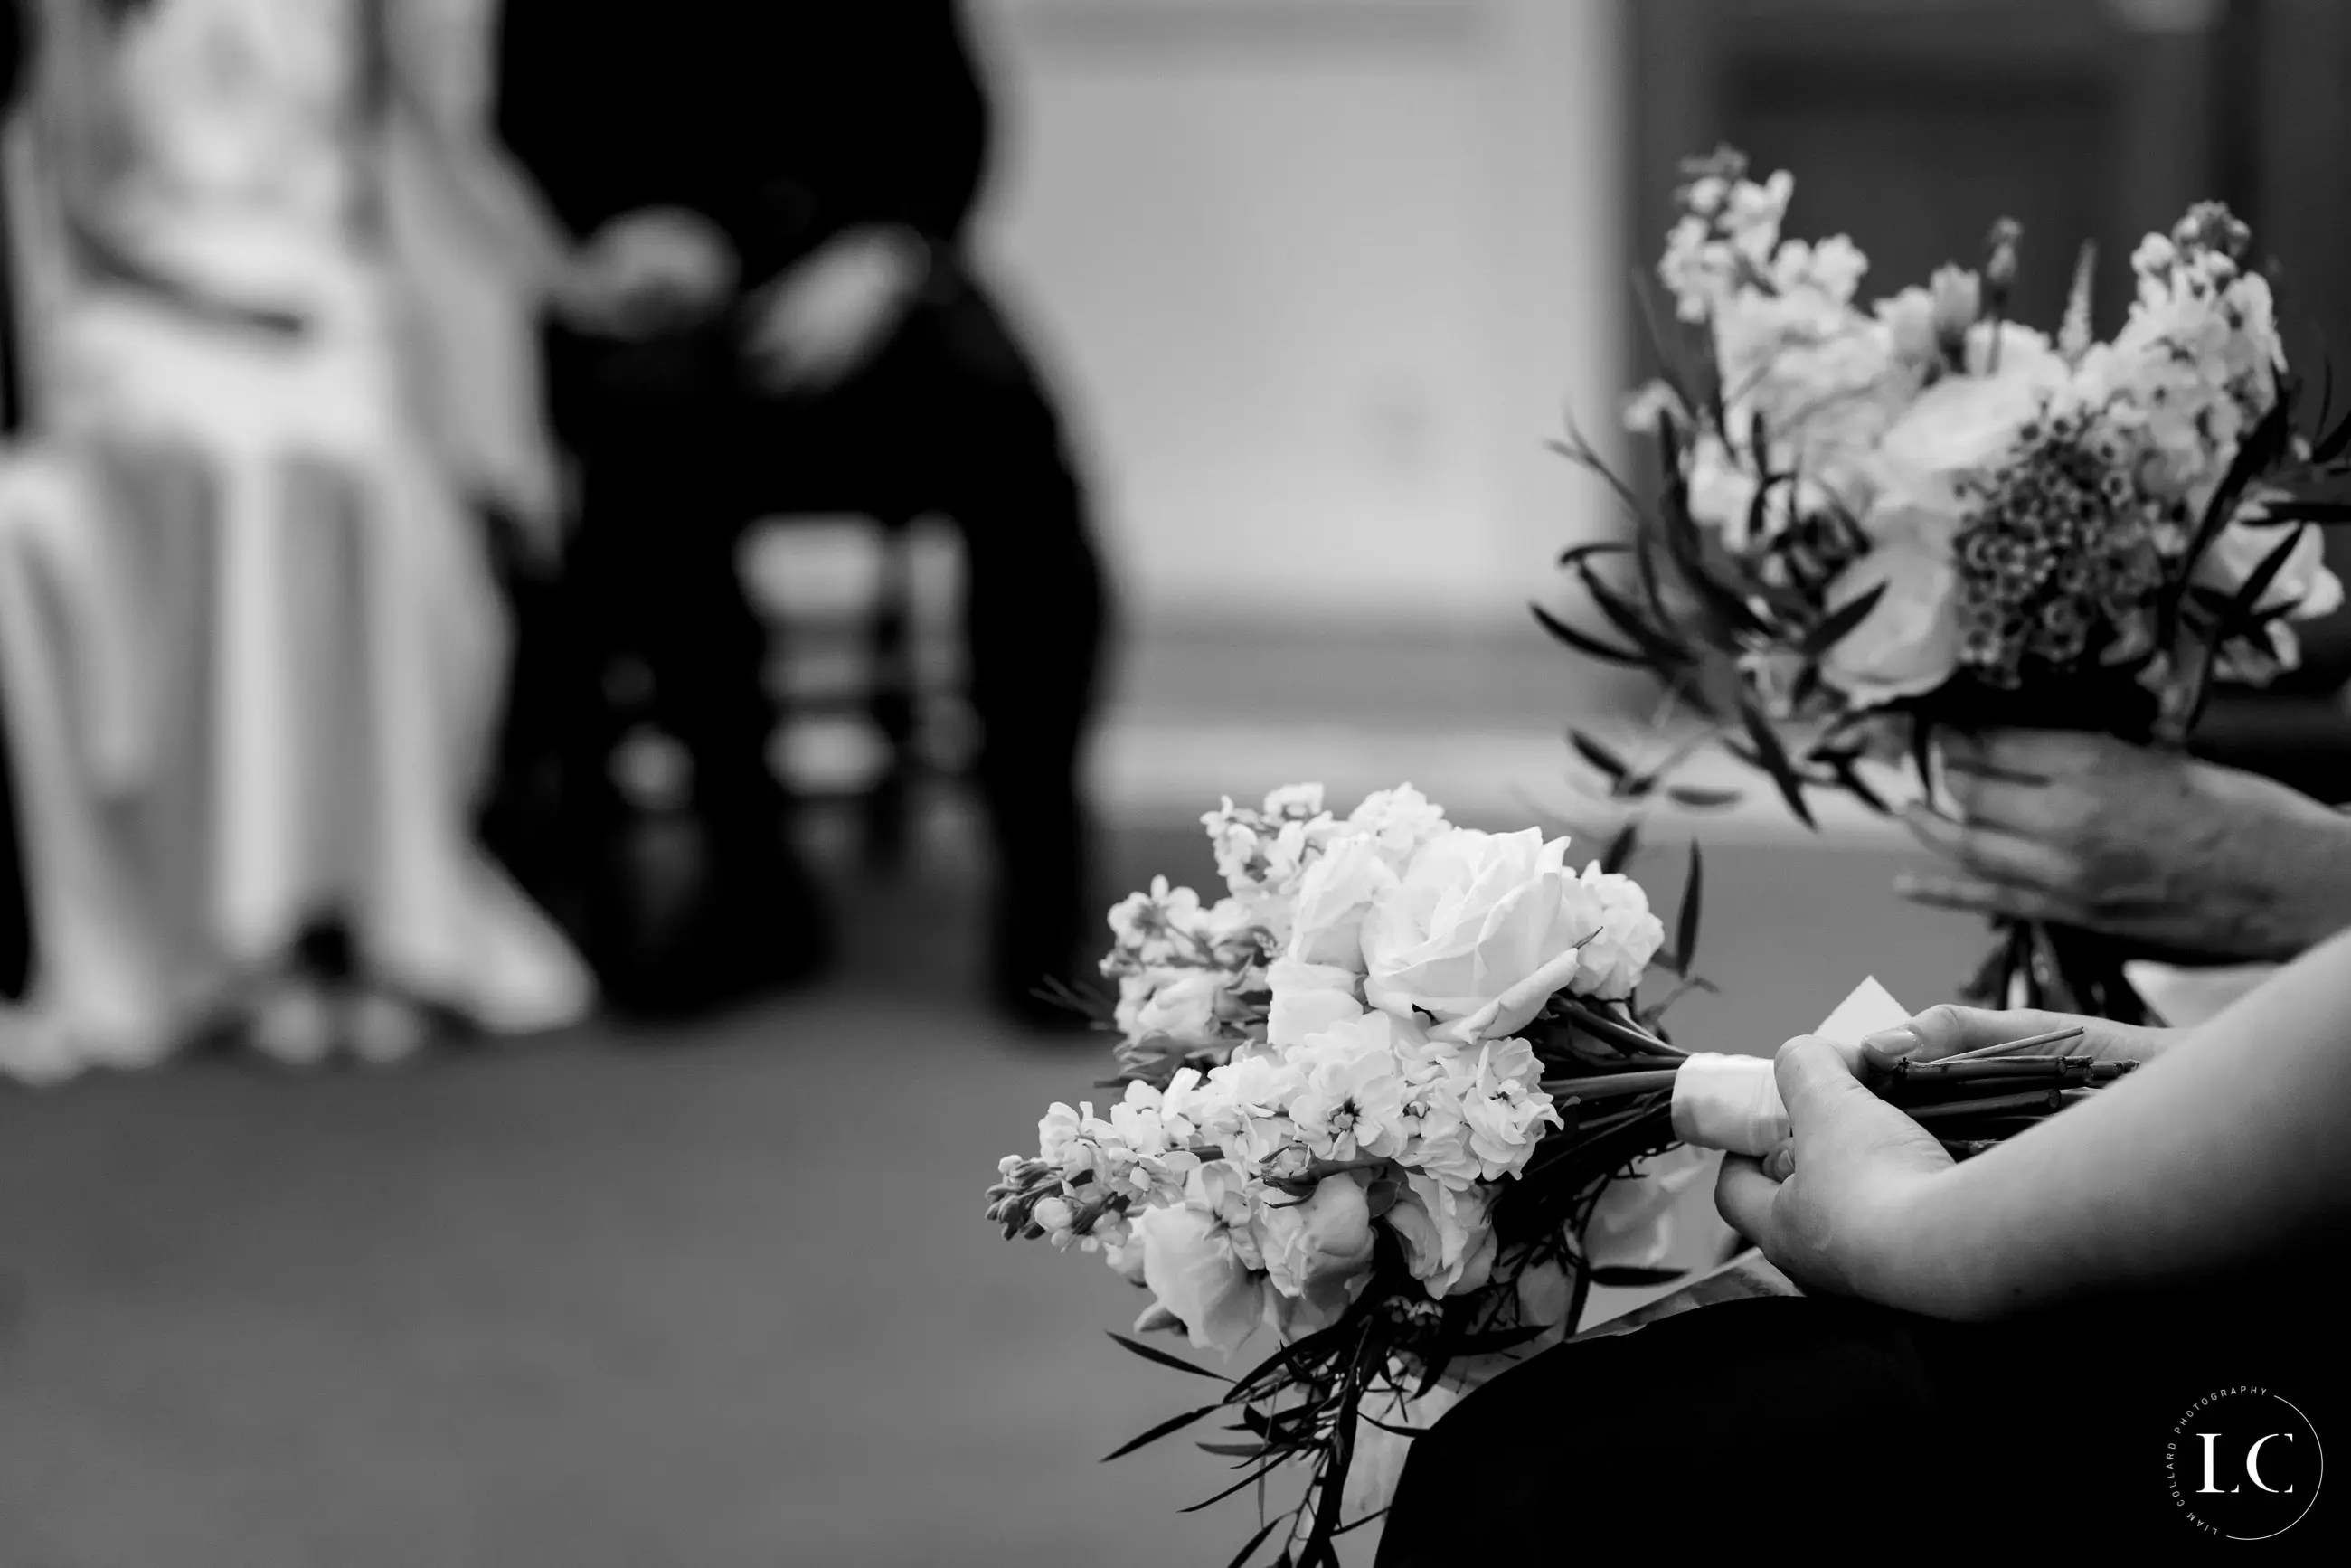 Flowers at a wedding